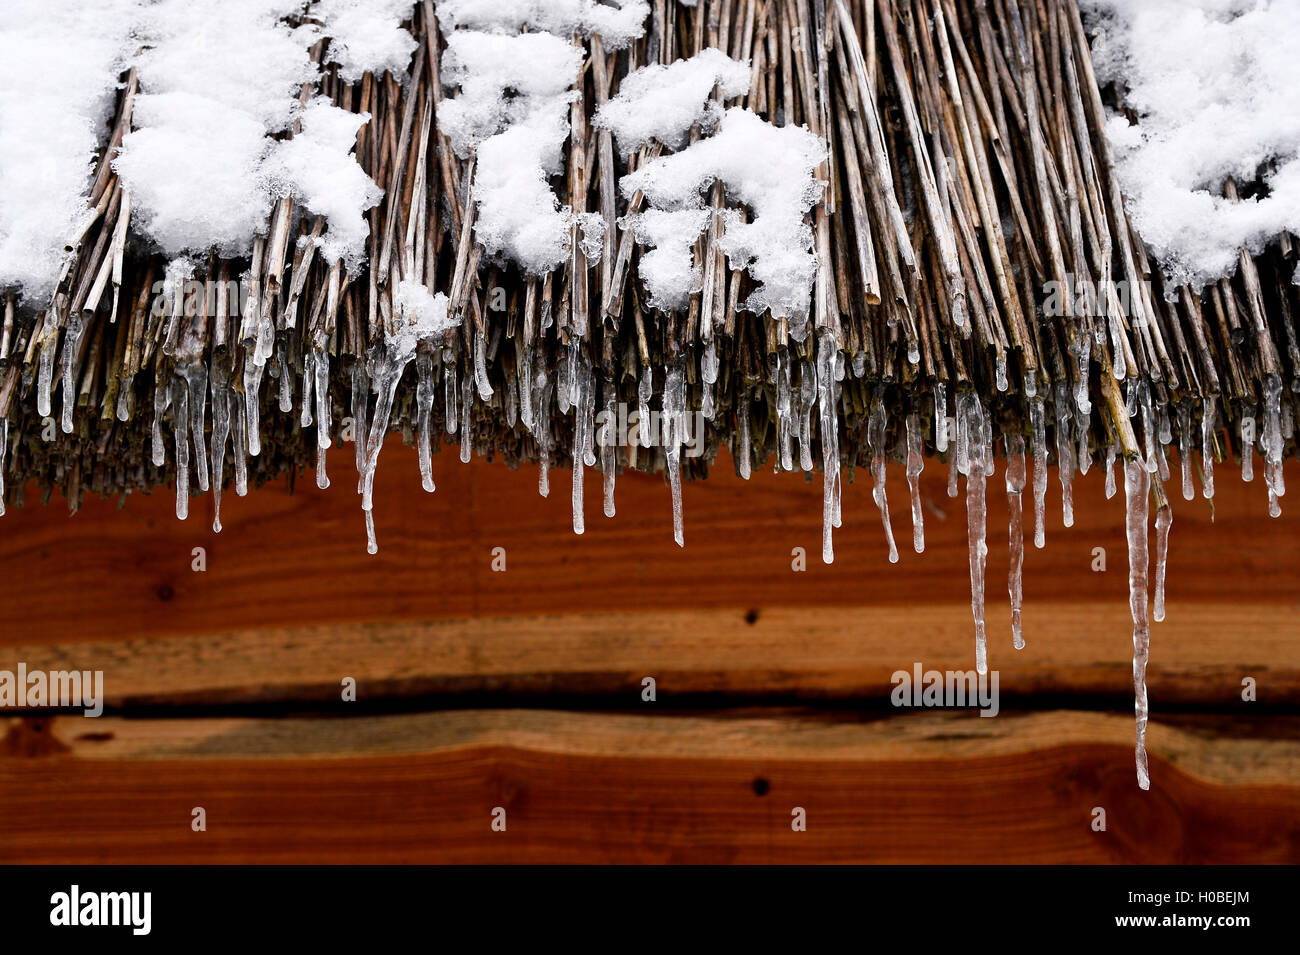 Straw roof on a chalet in winter, ardèche, france - Stock Image